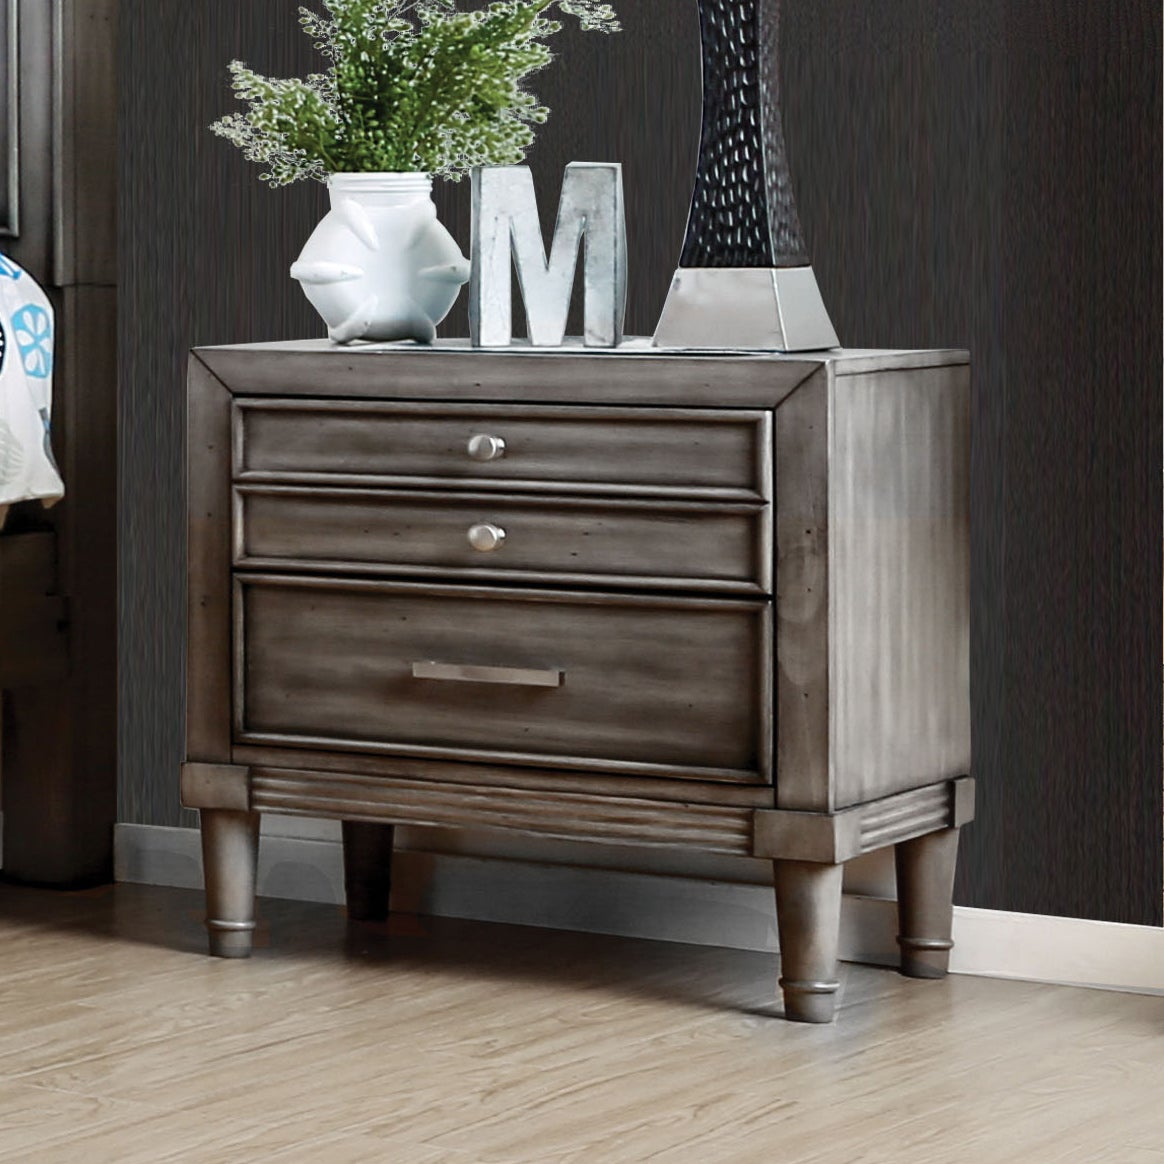 stand hidden drawer night drawers whidden la inc nightstand homelegance with bedroom w